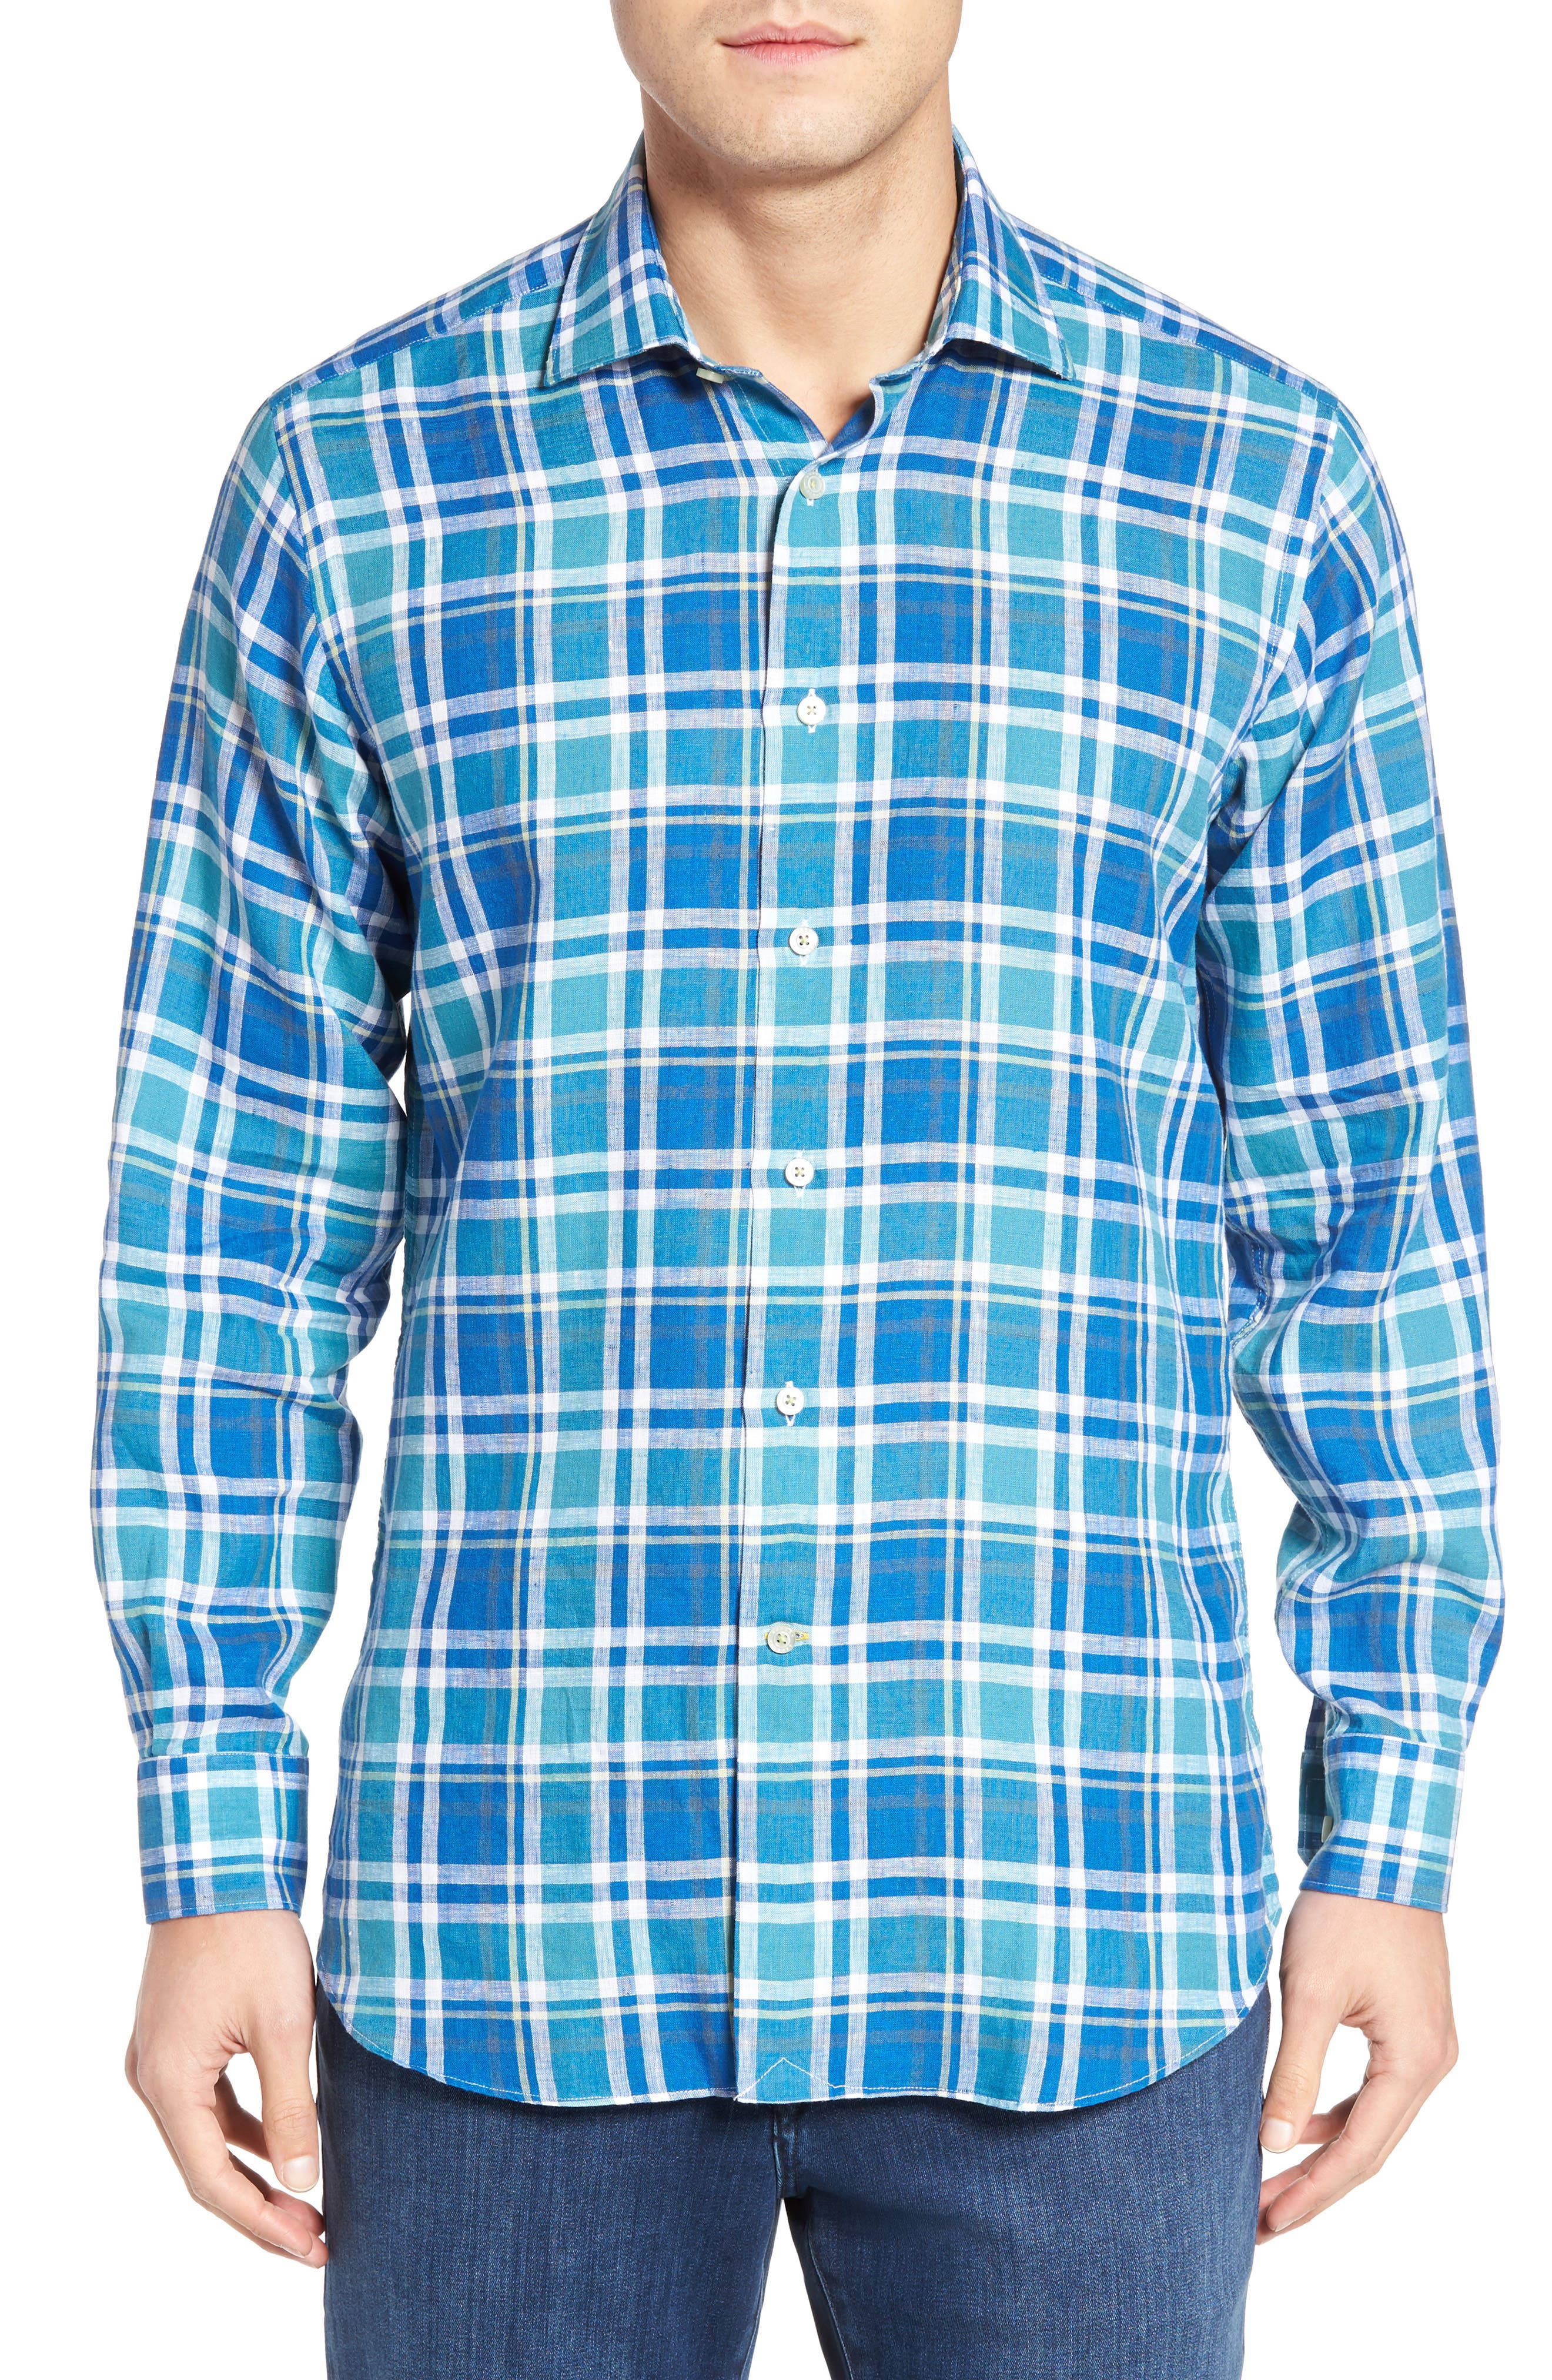 Crespi IV Tailored Fit Sport Shirt,                         Main,                         color, Teal